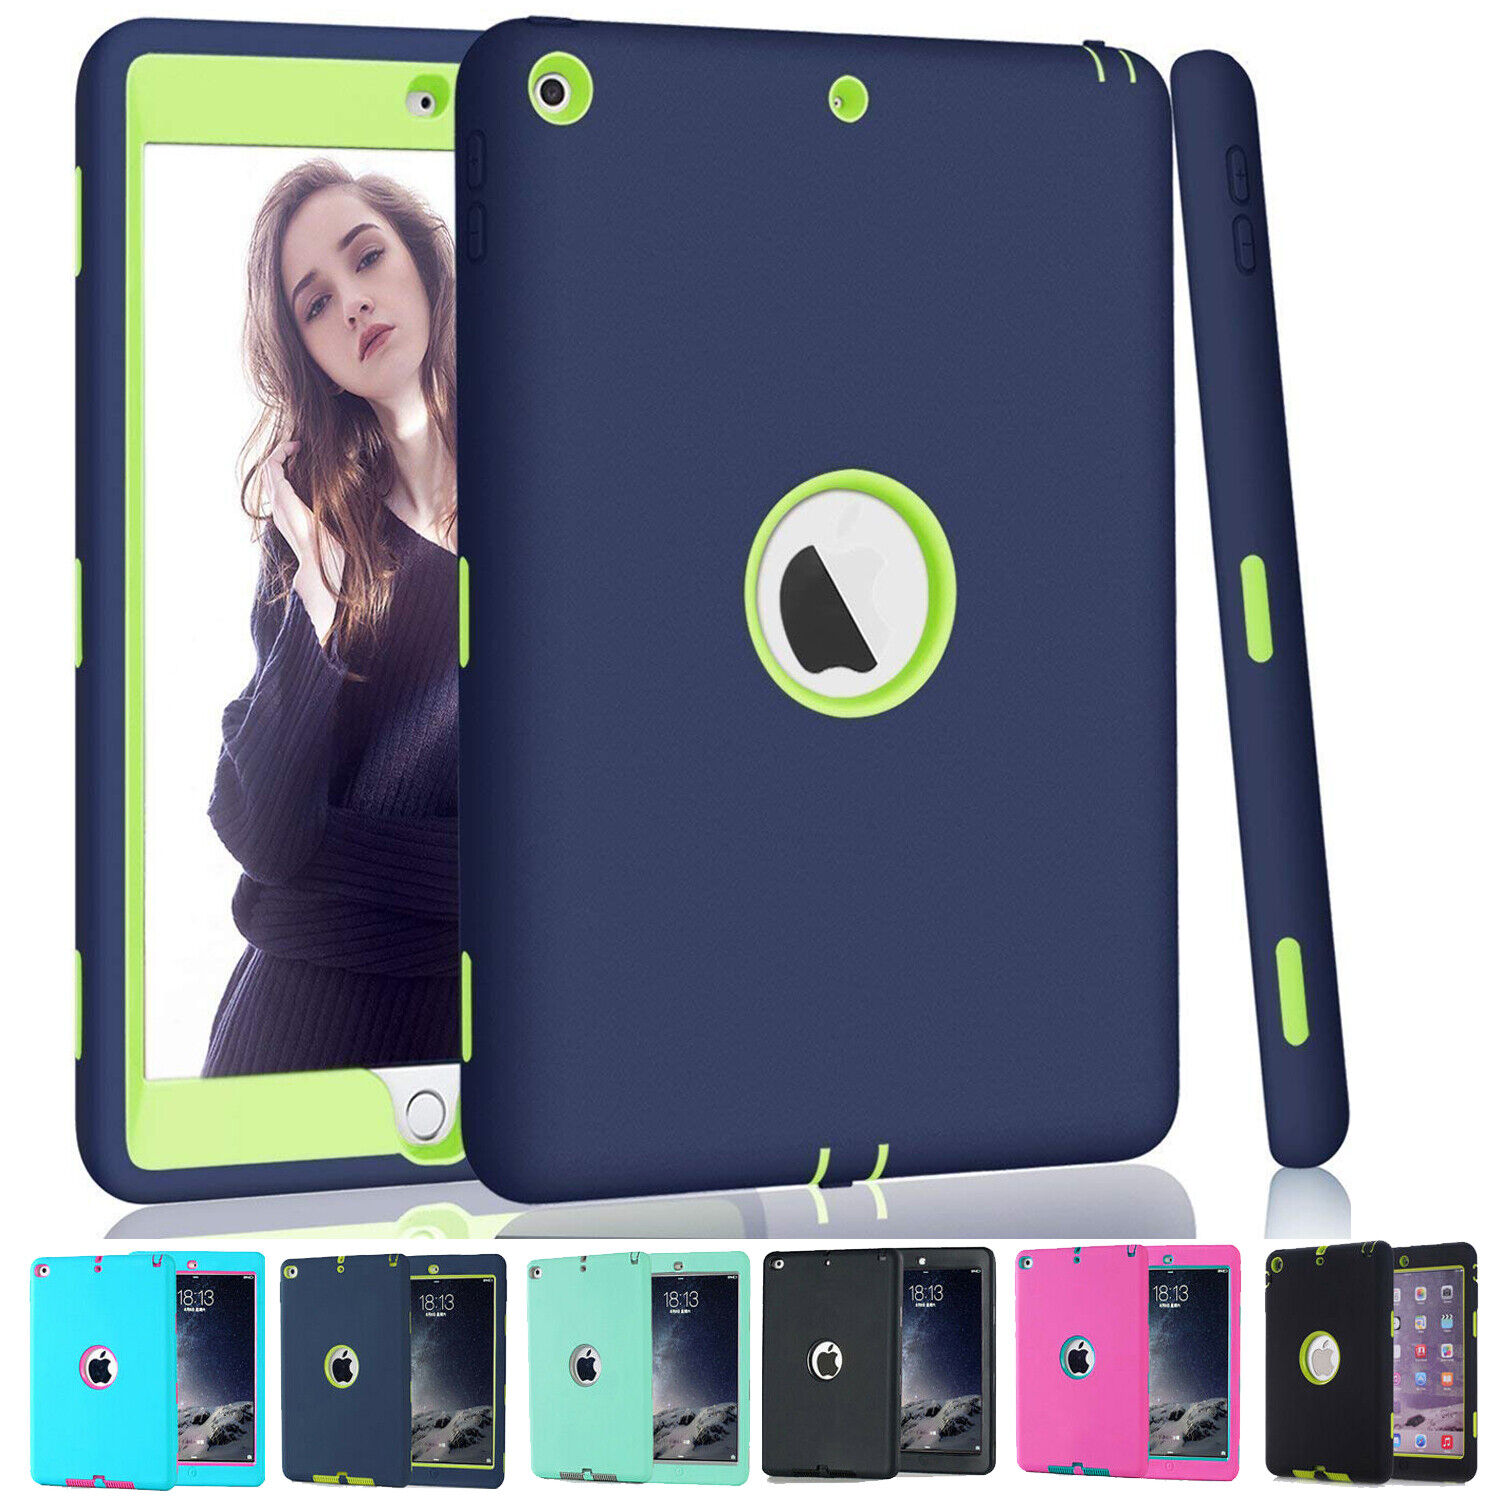 Heavy Duty Kids Case For iPad 9.7 6th Gen 2018 /2017 Pro 9.7